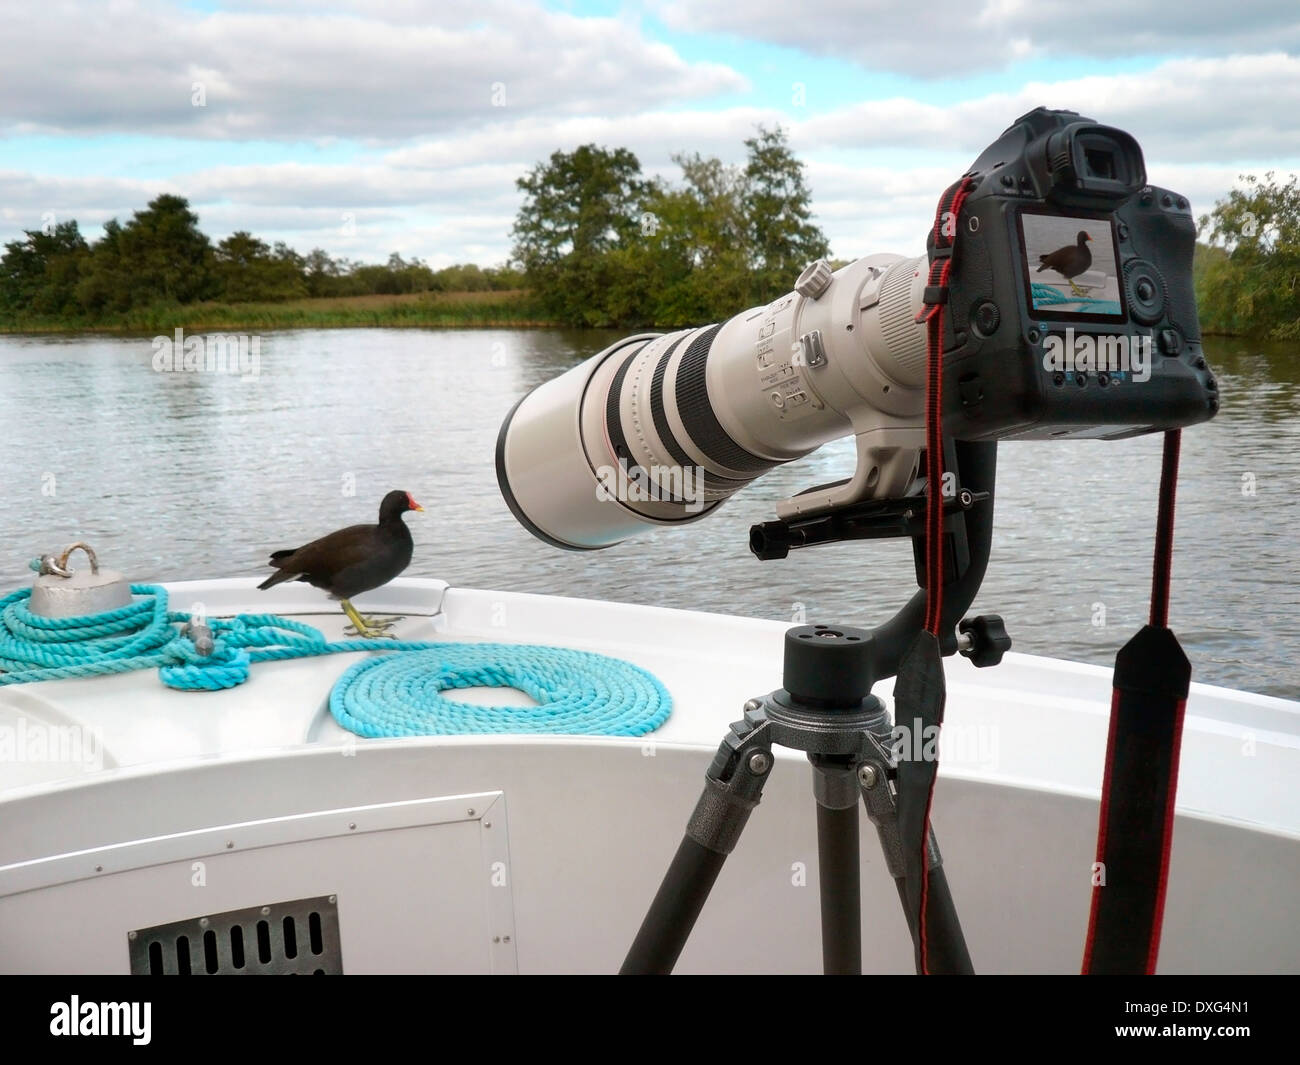 Time for your close-up Miss Moorhen - A large telephoto lens is often required to get you close to the wildlife. - Stock Image